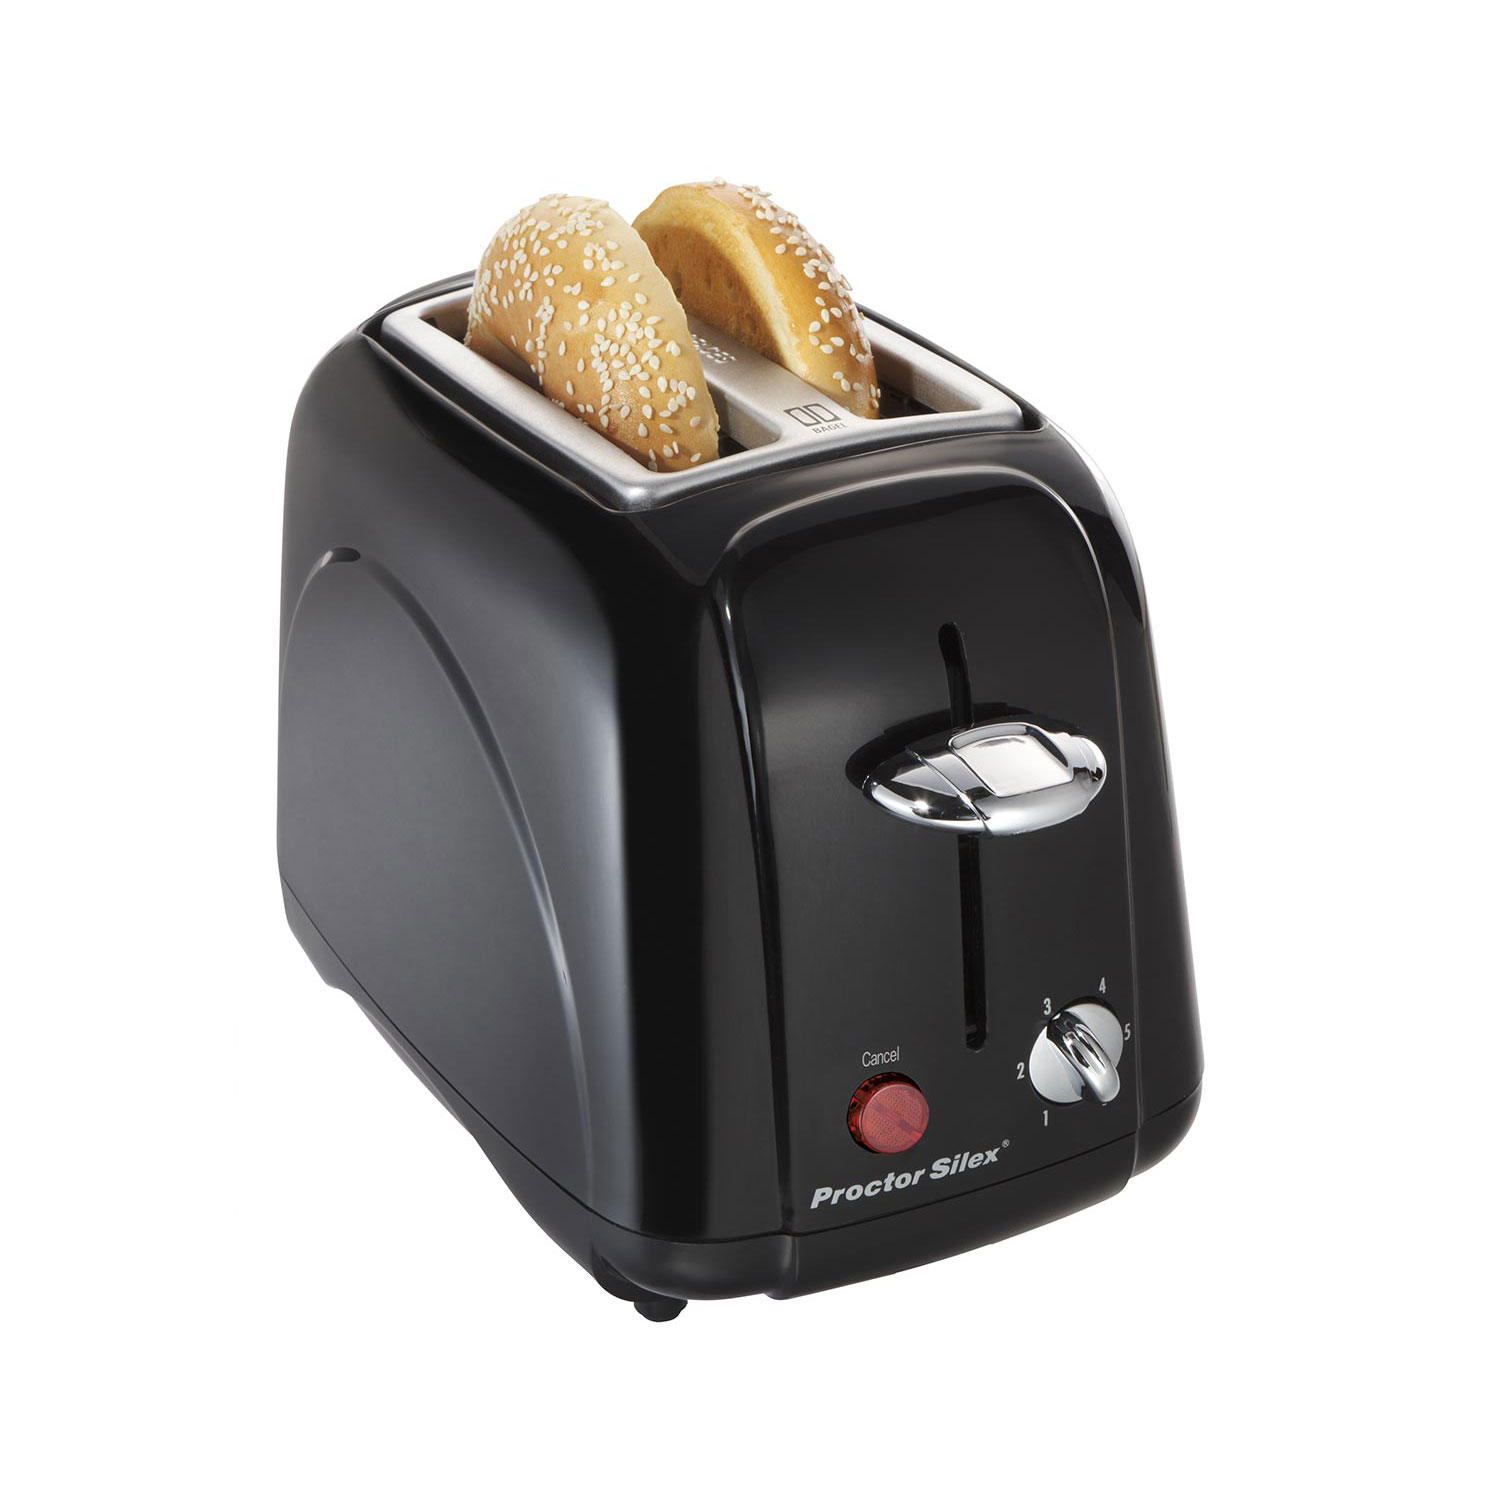 Proctor Silex 22301 2 Slice Countertop Toaster with Slide Out Crumb Tray, Black